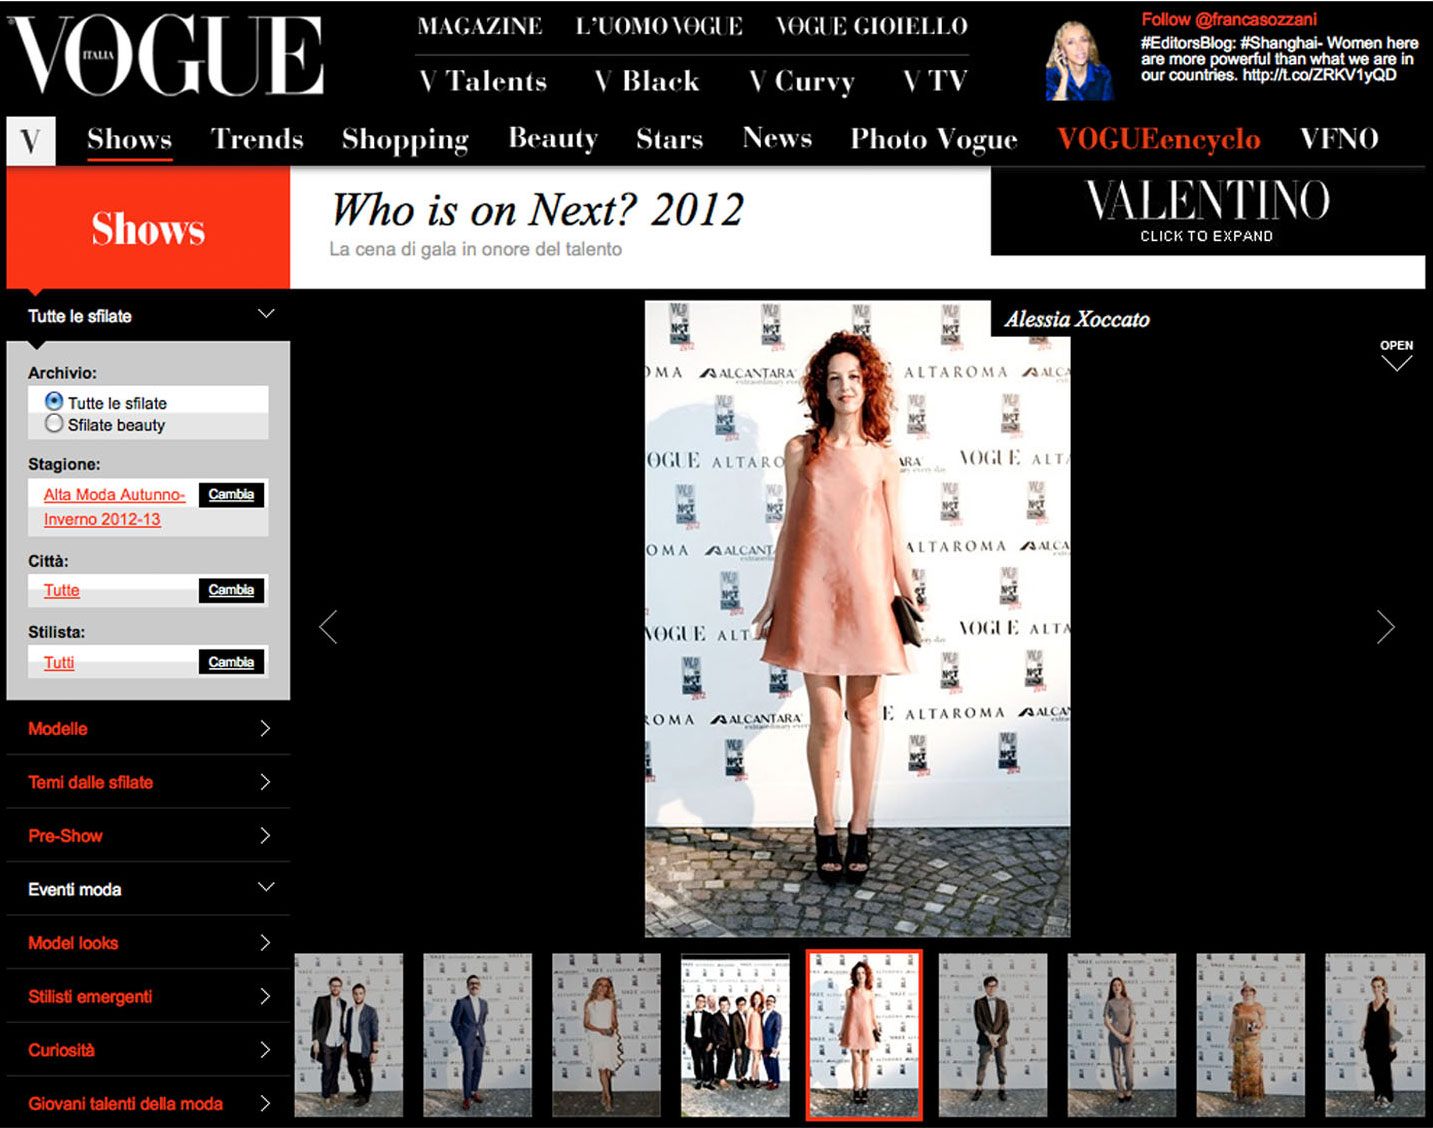 Alessia Xoccato 2012_05_Vogue.it-2 2012   Alessia Xoccato 2012_05_Vogue.it-3 2012   Alessia Xoccato 2012_05_Vogue.it_ 2012   Alessia Xoccato 2012_07_Vogue.it-2 2012   Alessia Xoccato 2012_07_Vogue.it-3 2012   Alessia Xoccato 2012_07_Vogue.it-4 2012   Alessia Xoccato 2012_07_Vogue.it-5 2012   Alessia Xoccato 2012_07_Vogue.it-7 2012   Alessia Xoccato 2012_07_Vogue.it-8 2012